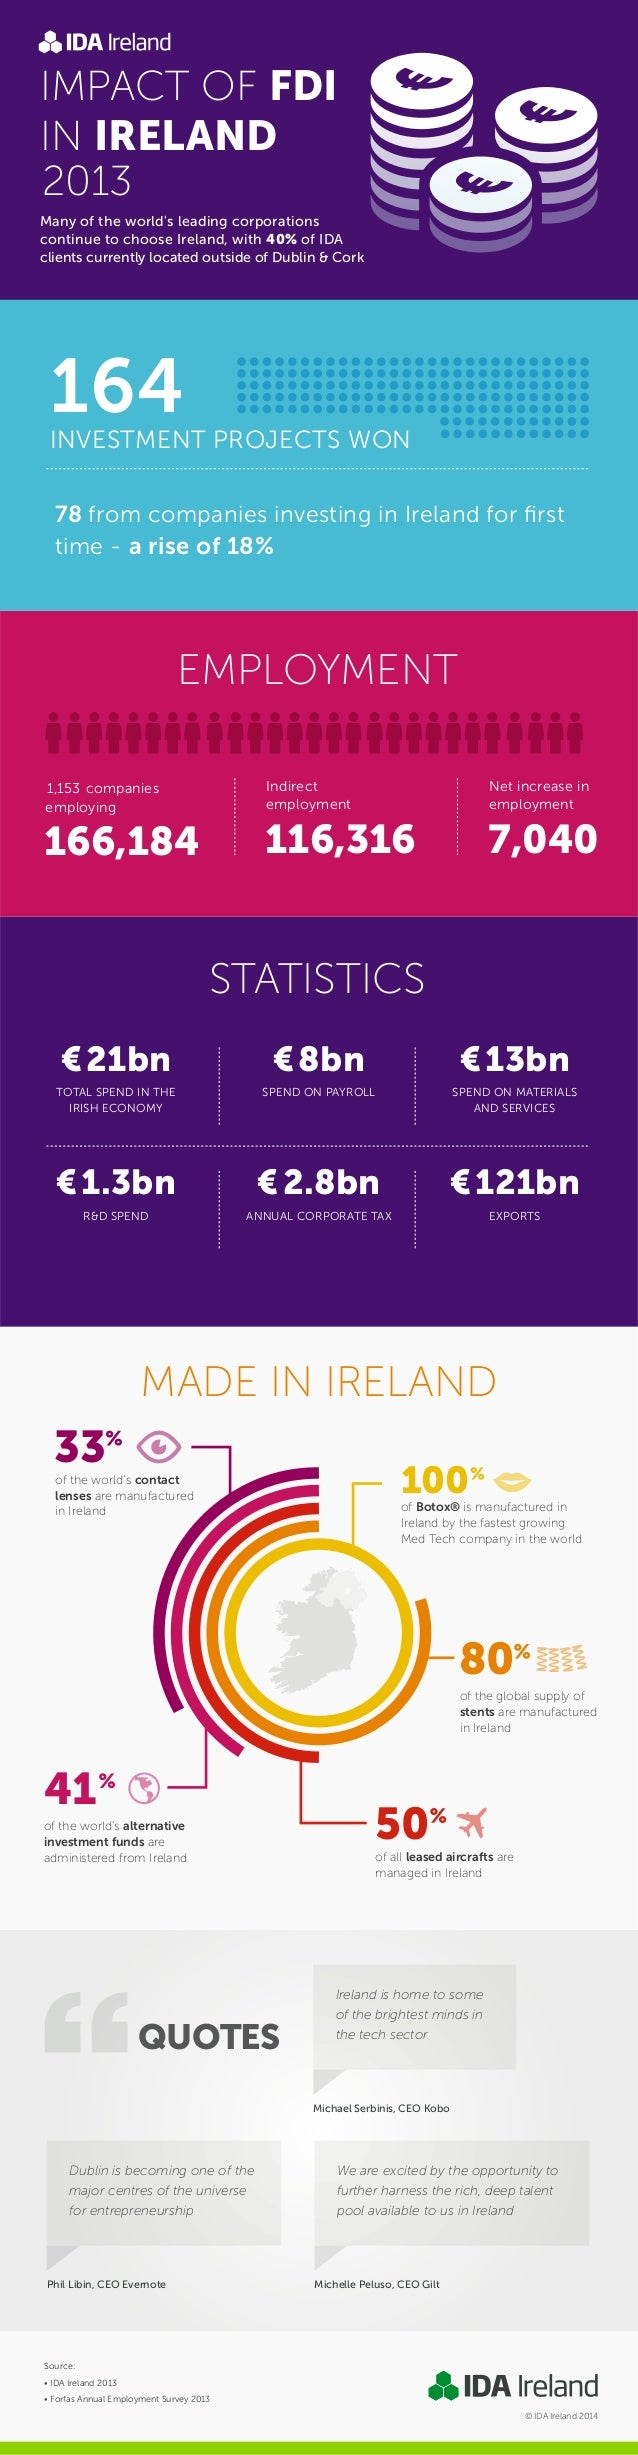 MADE IN IRELAND 166,184 1,153 companies employing IMPACT OF FDI IN IRELAND STATISTICS EMPLOYMENT Ireland is home to some o...